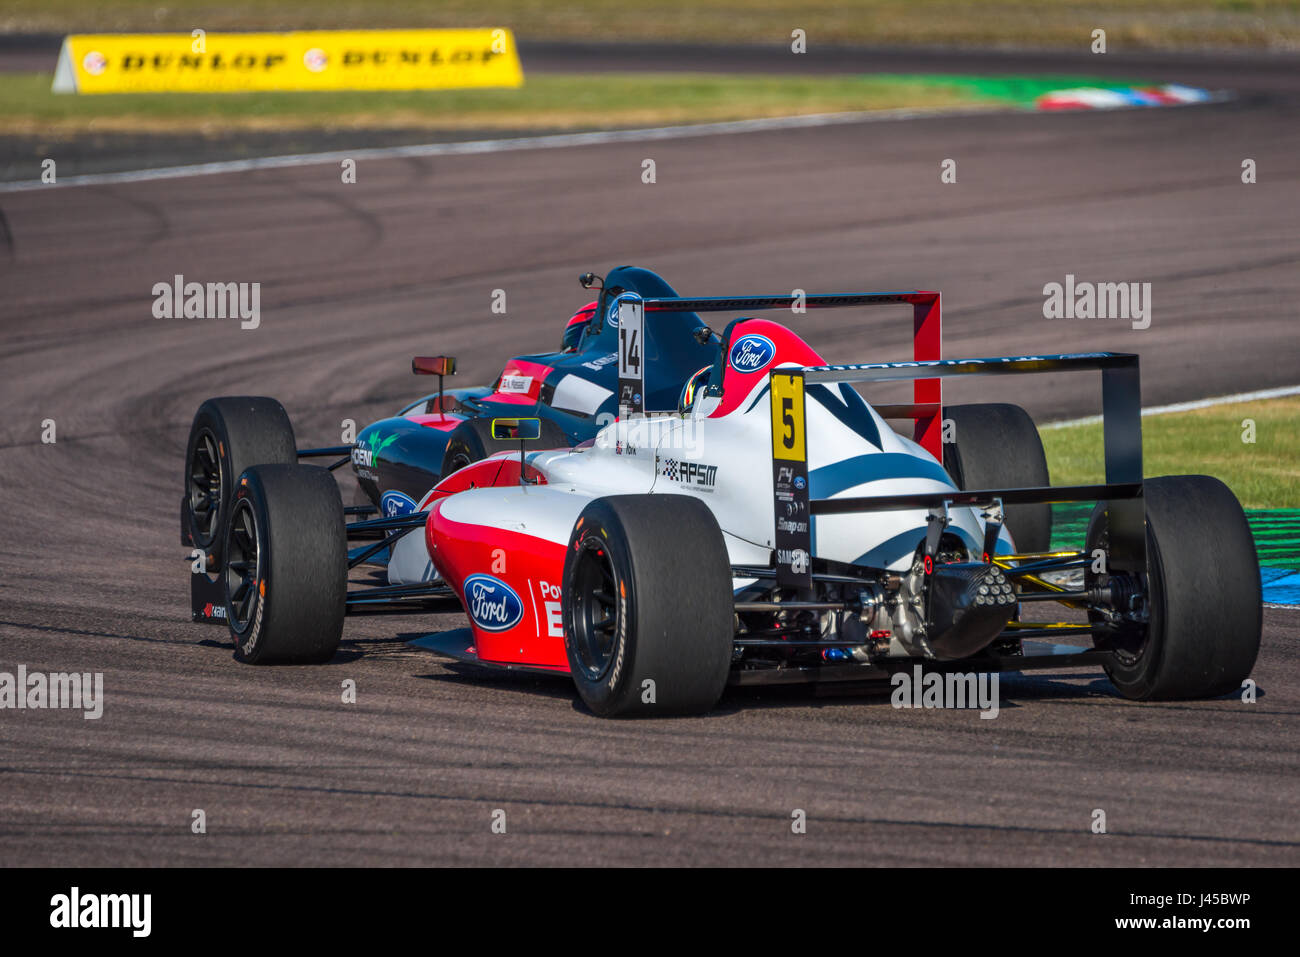 Formula Four Racing Driver Oliver York competing at Thruxton Circuit, Hampshire, on Sunday 7th May 2017. - Stock Image